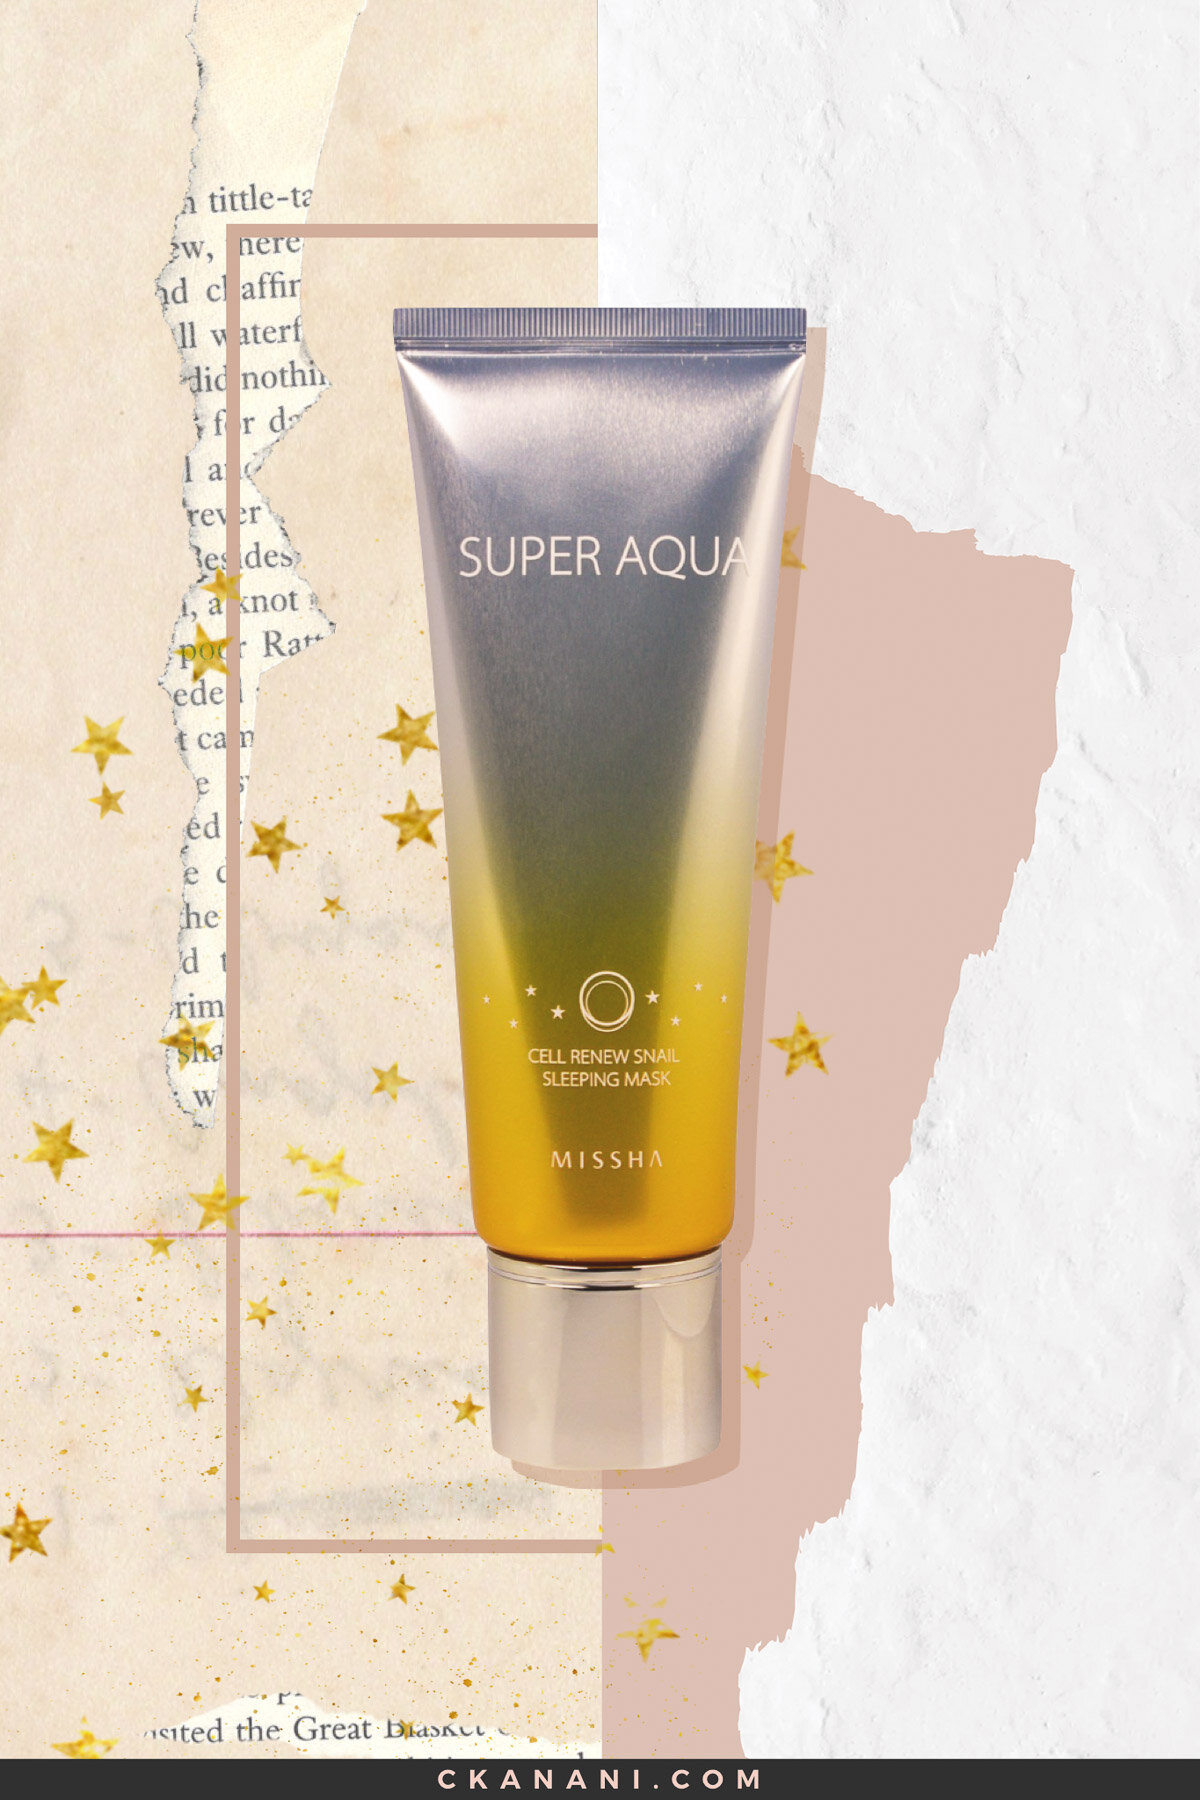 Missha Super Aqua Cell Renew Snail Sleeping Mask: The Best Face Masks